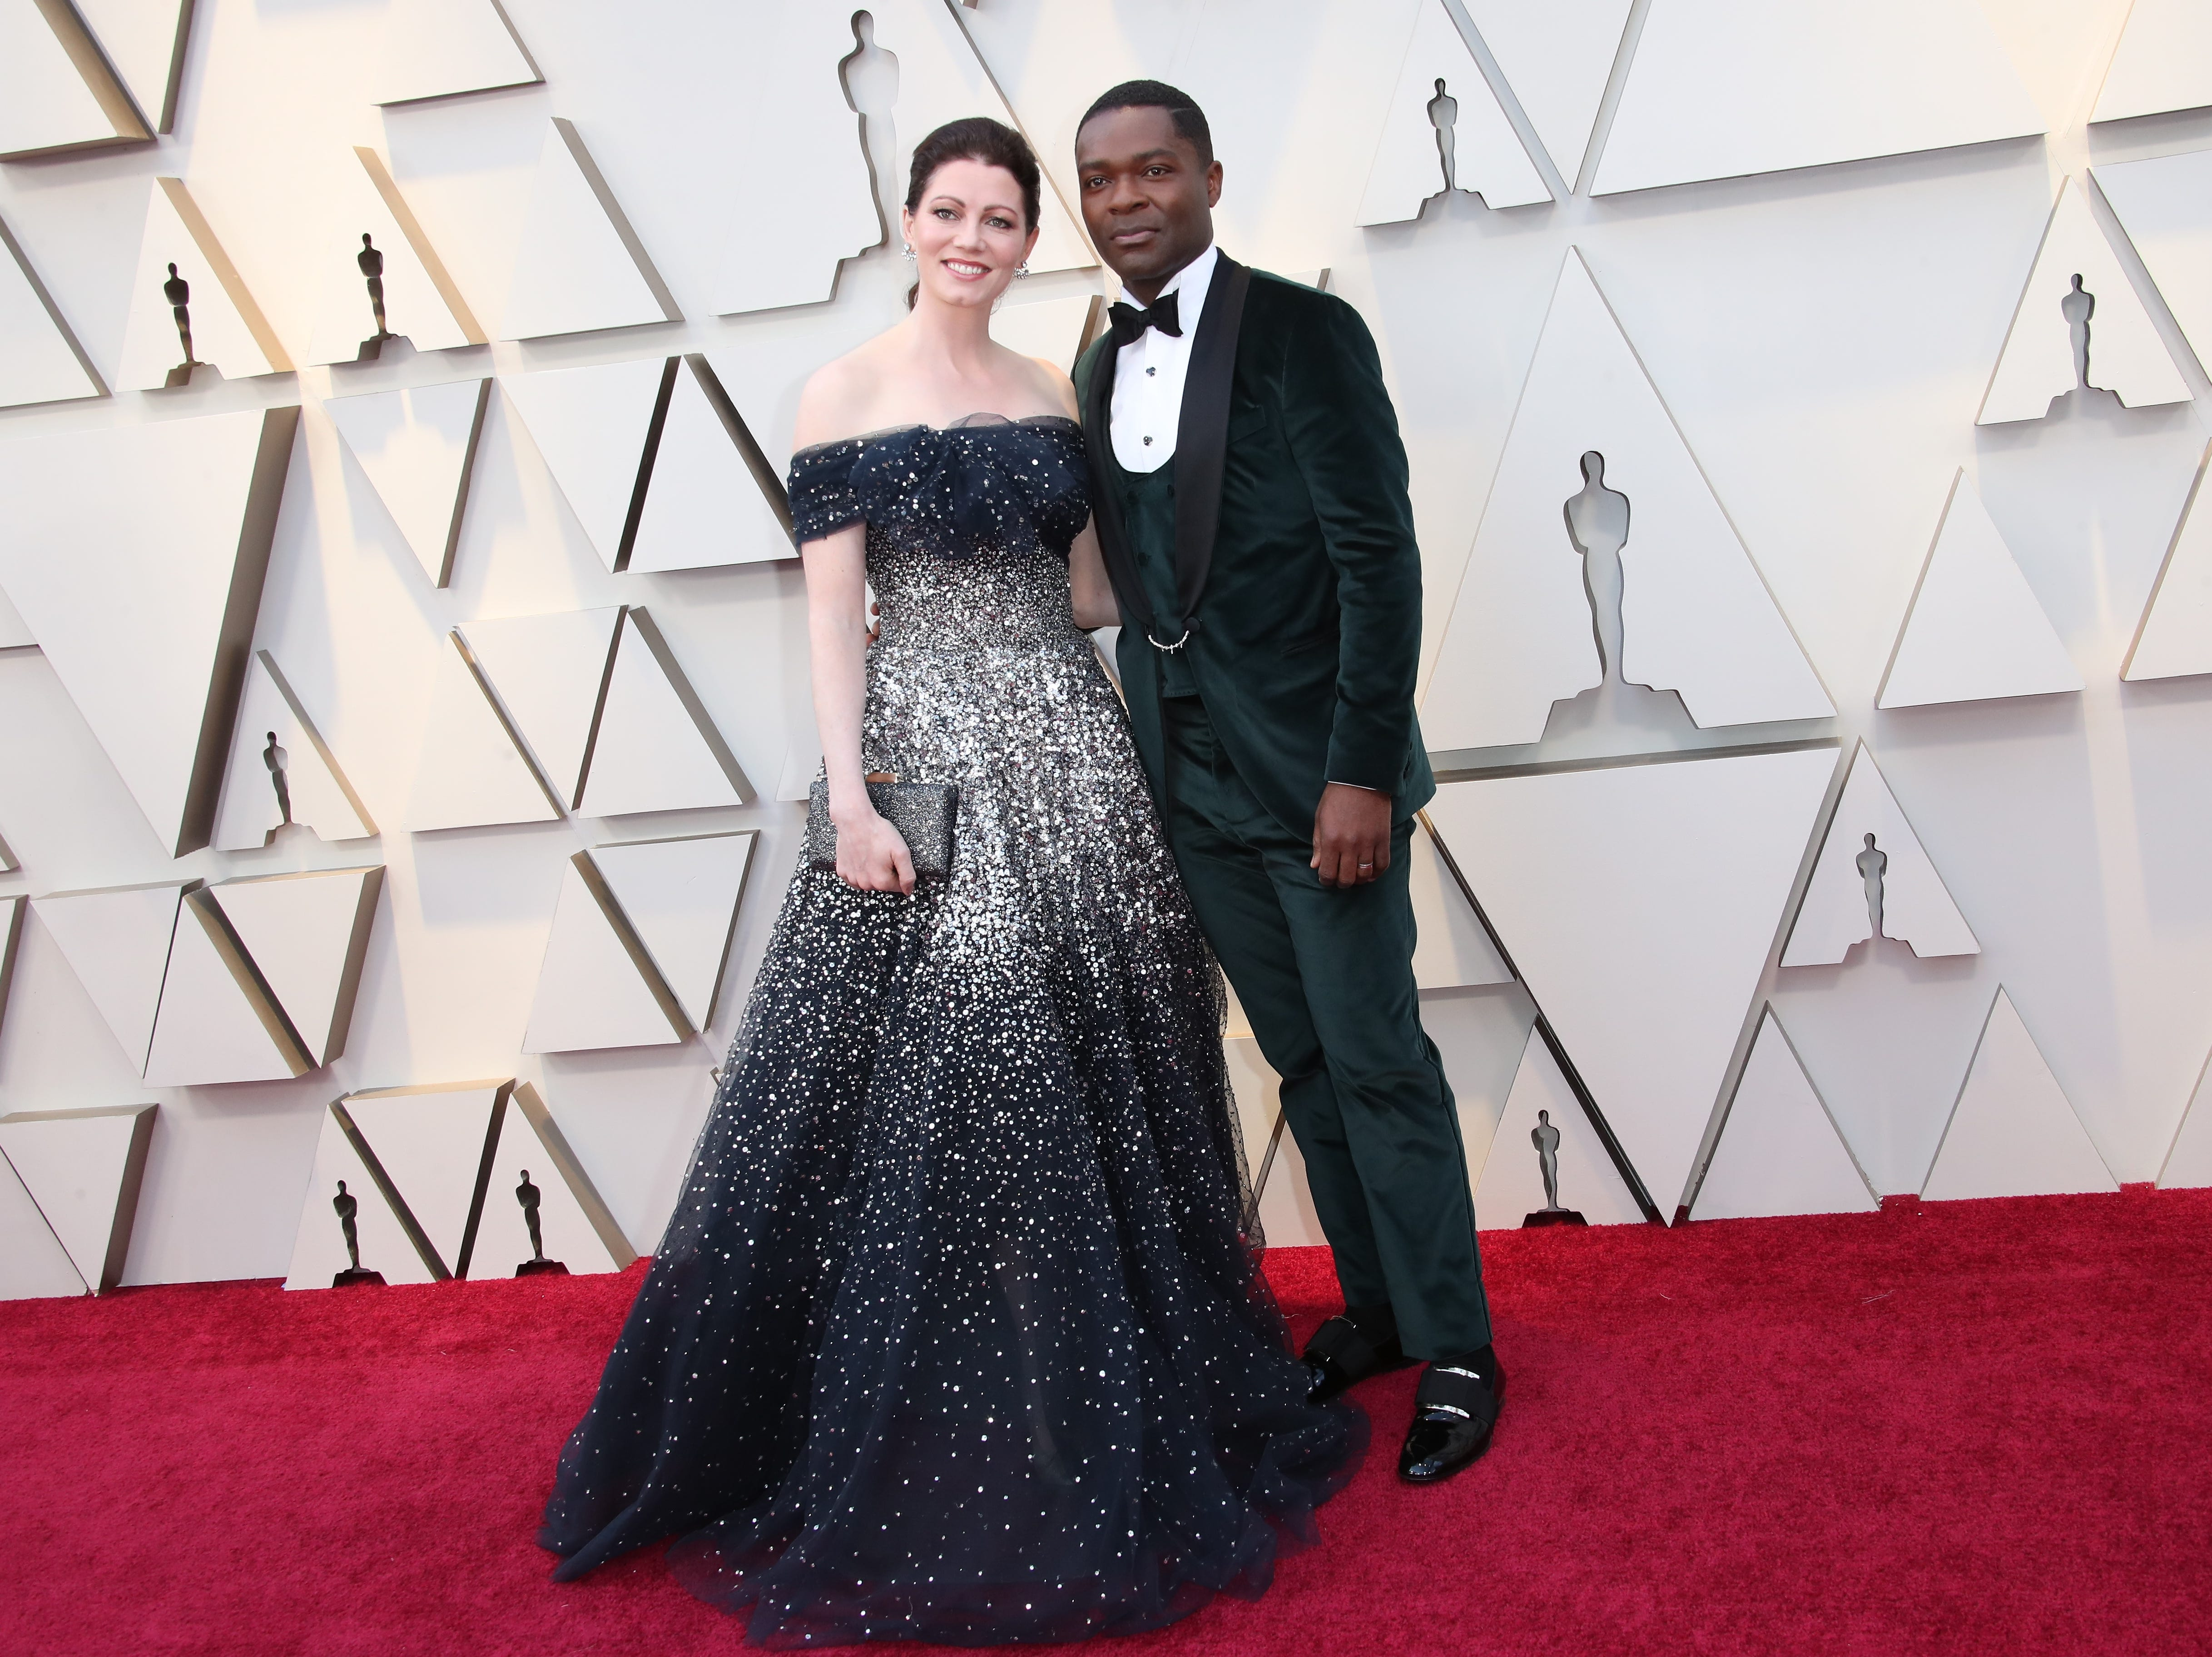 February 24, 2019; Los Angeles, CA, USA; Jessica Oyelowo, left and David Oyelowo arrive at the 91st Academy Awards at the Dolby Theatre. Mandatory Credit: Dan MacMedan-USA TODAY NETWORK (Via OlyDrop)